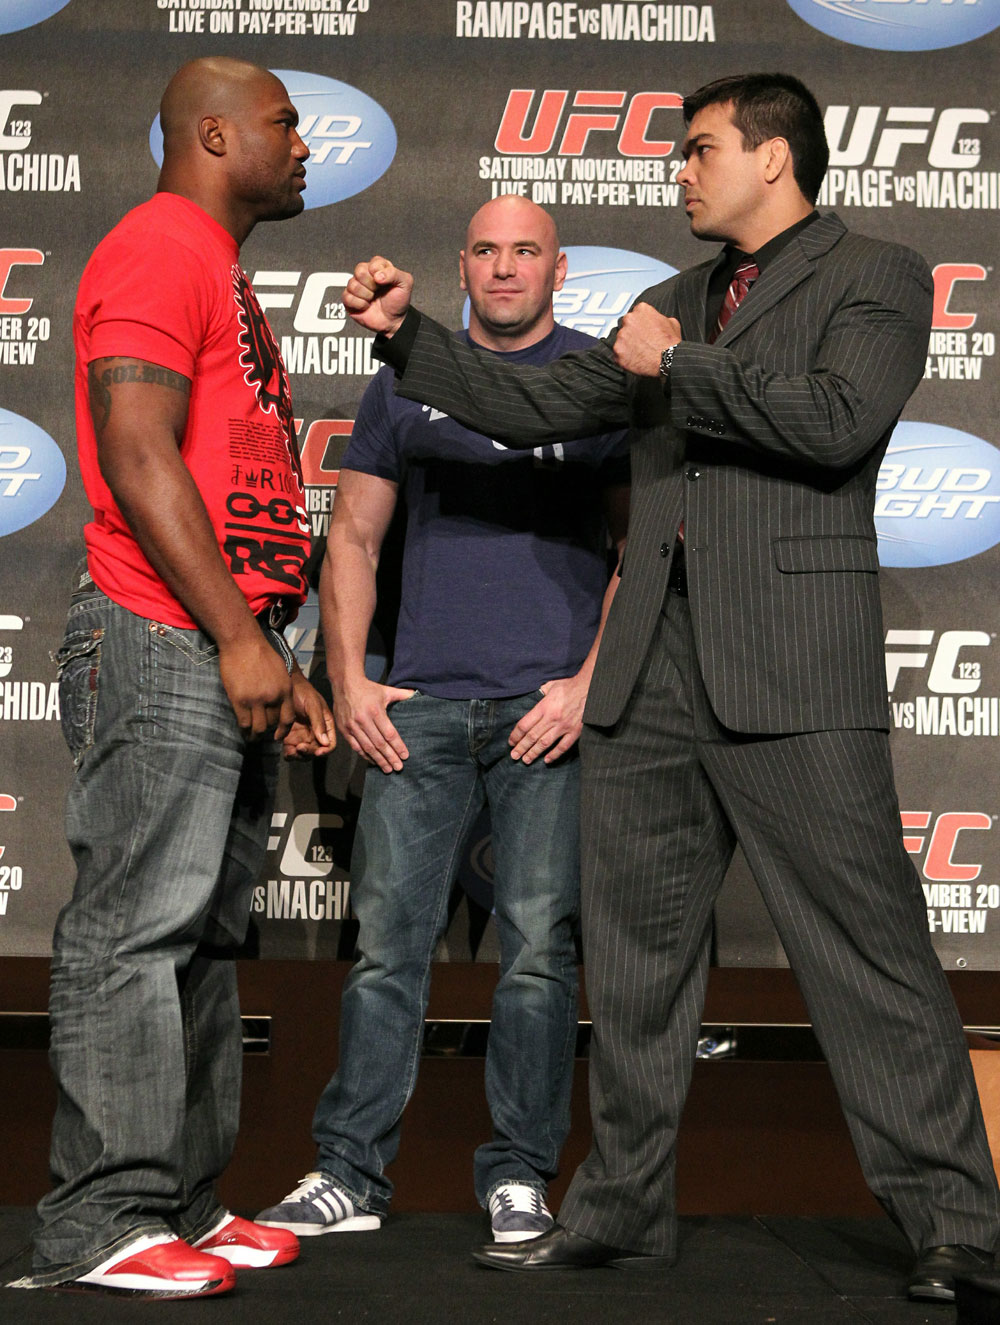 Quinton &quot;Rampage&quot; Jackson (L) and Lyoto &quot;The Dragon&quot; Machida (R) face off as UFC President Dana White looks on at the UFC 123 pre-fight press conference at the MGM Grand Hotel and Casino in Detroit, Michigan on November 17, 2010  (Photo by Josh Hedges/Zuffa LLC/Zuffa LLC via